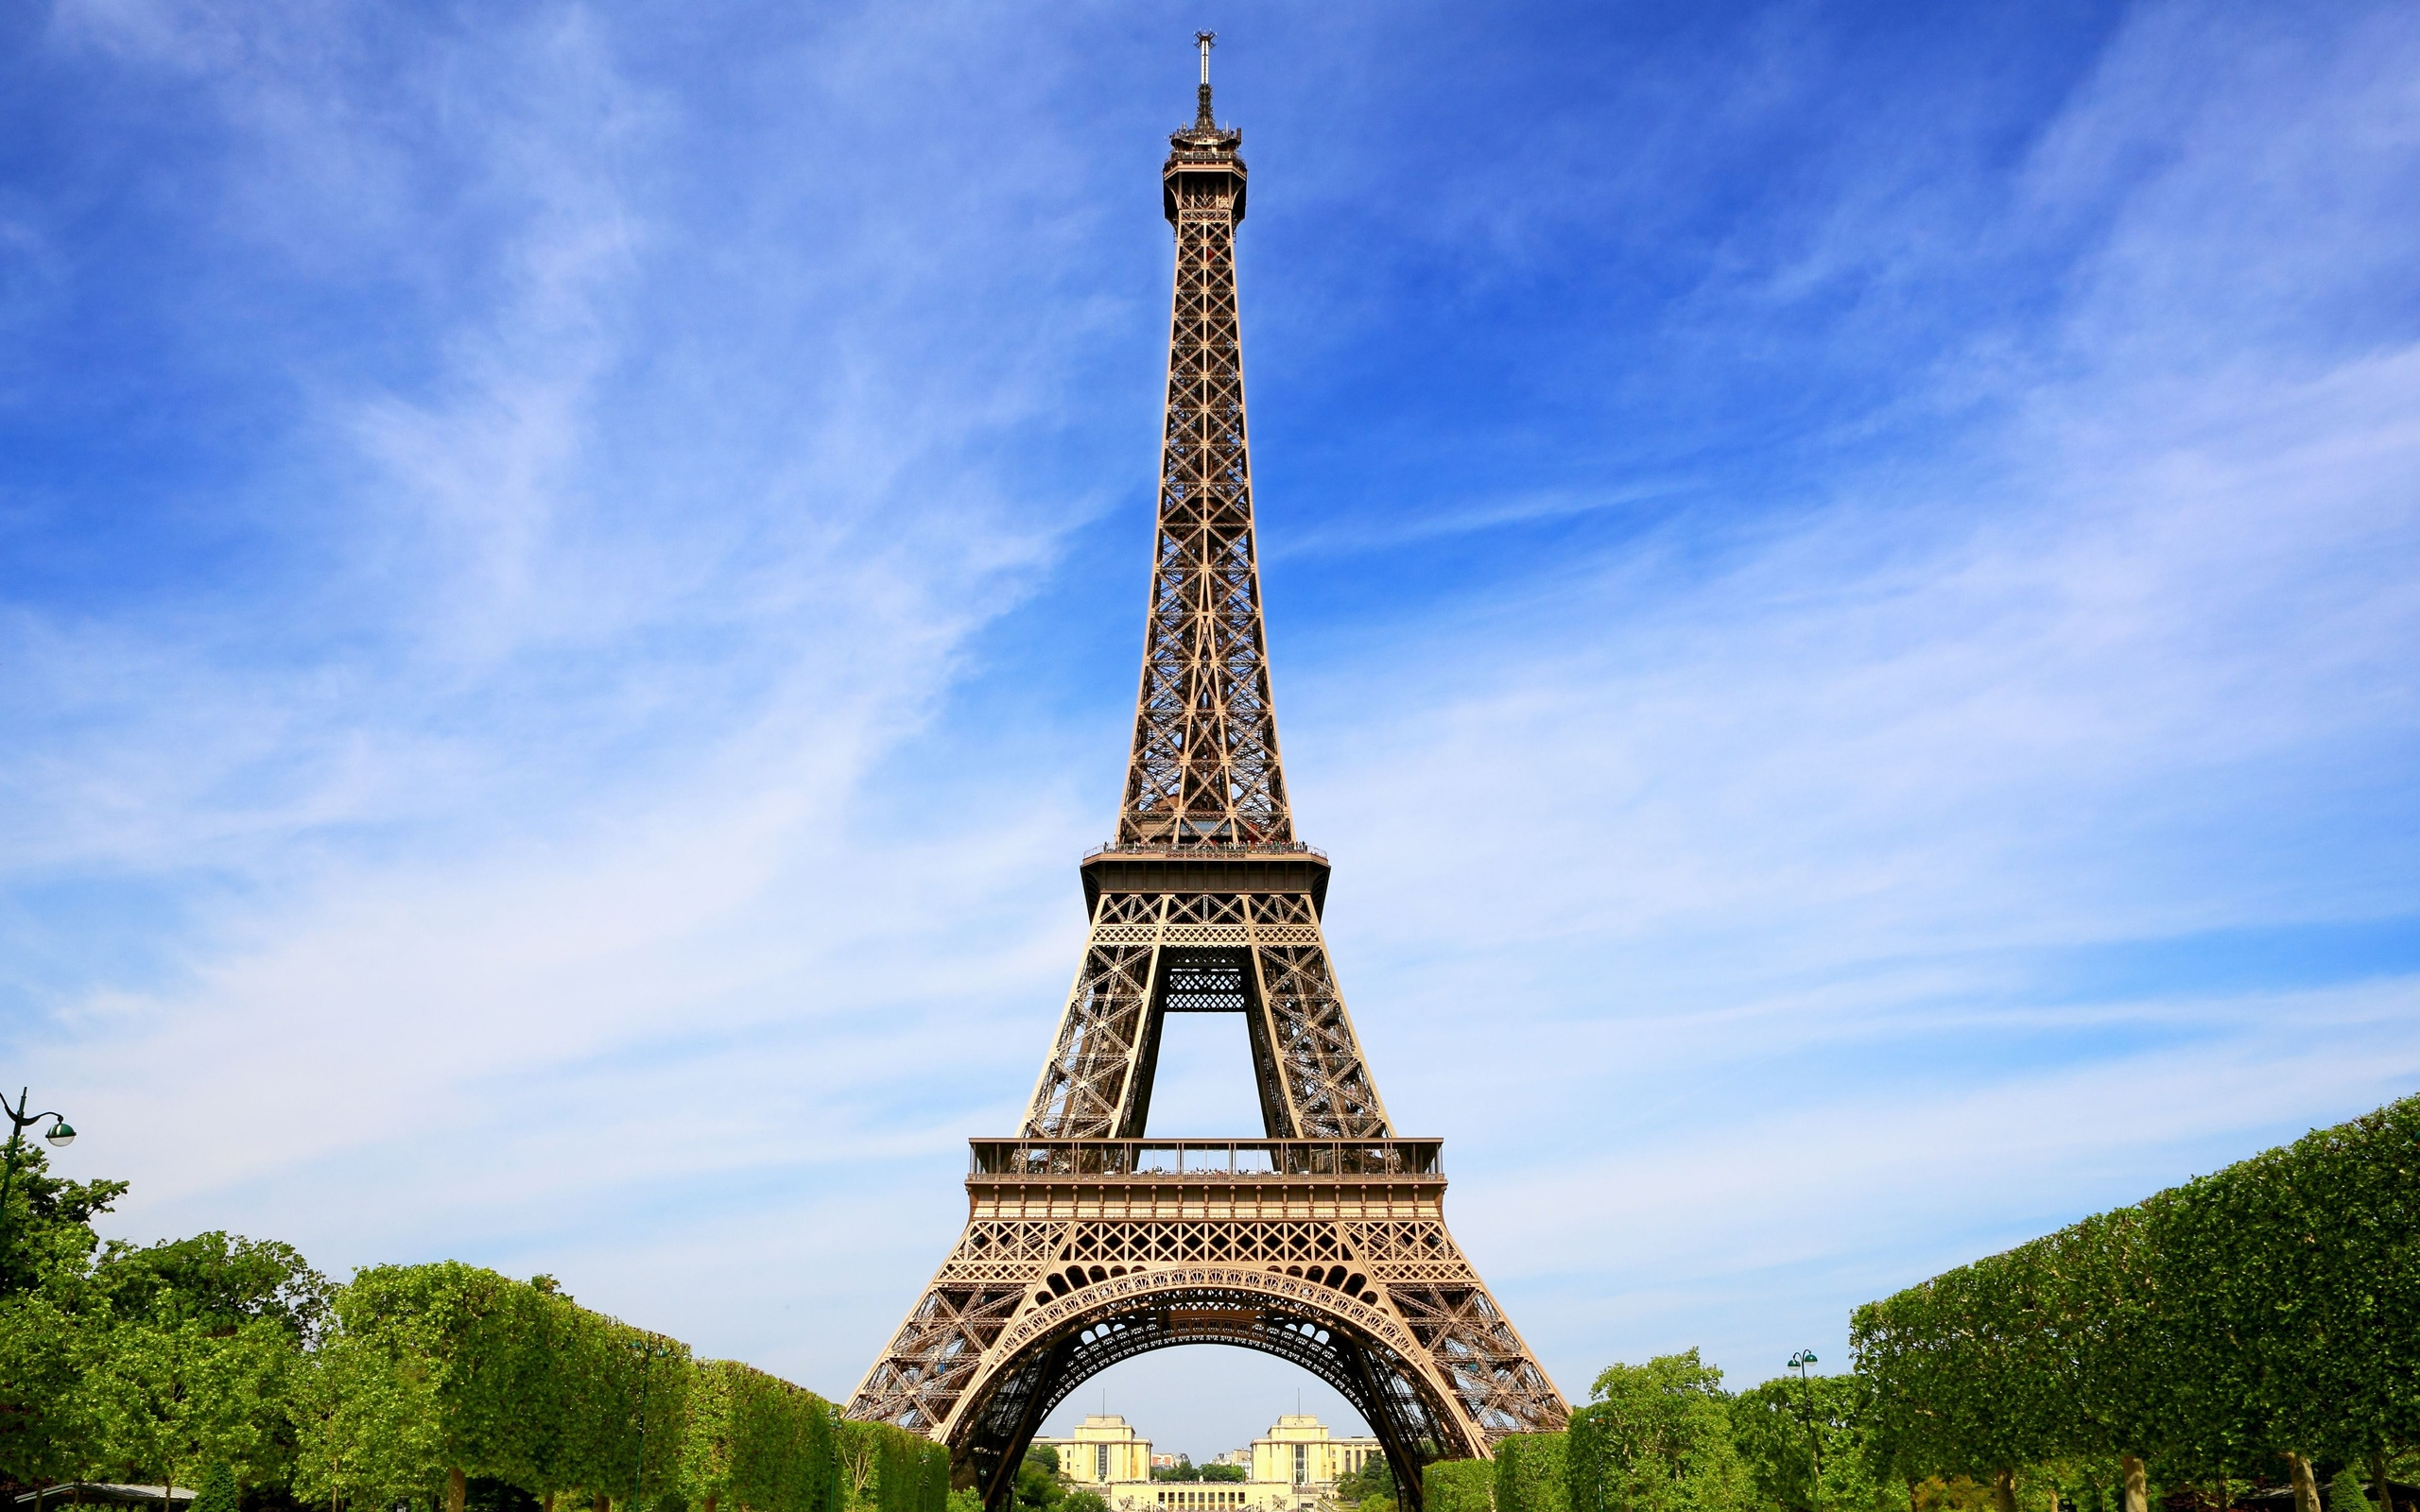 Eiffel Tower Wallpaper Hd Pixelstalk Net